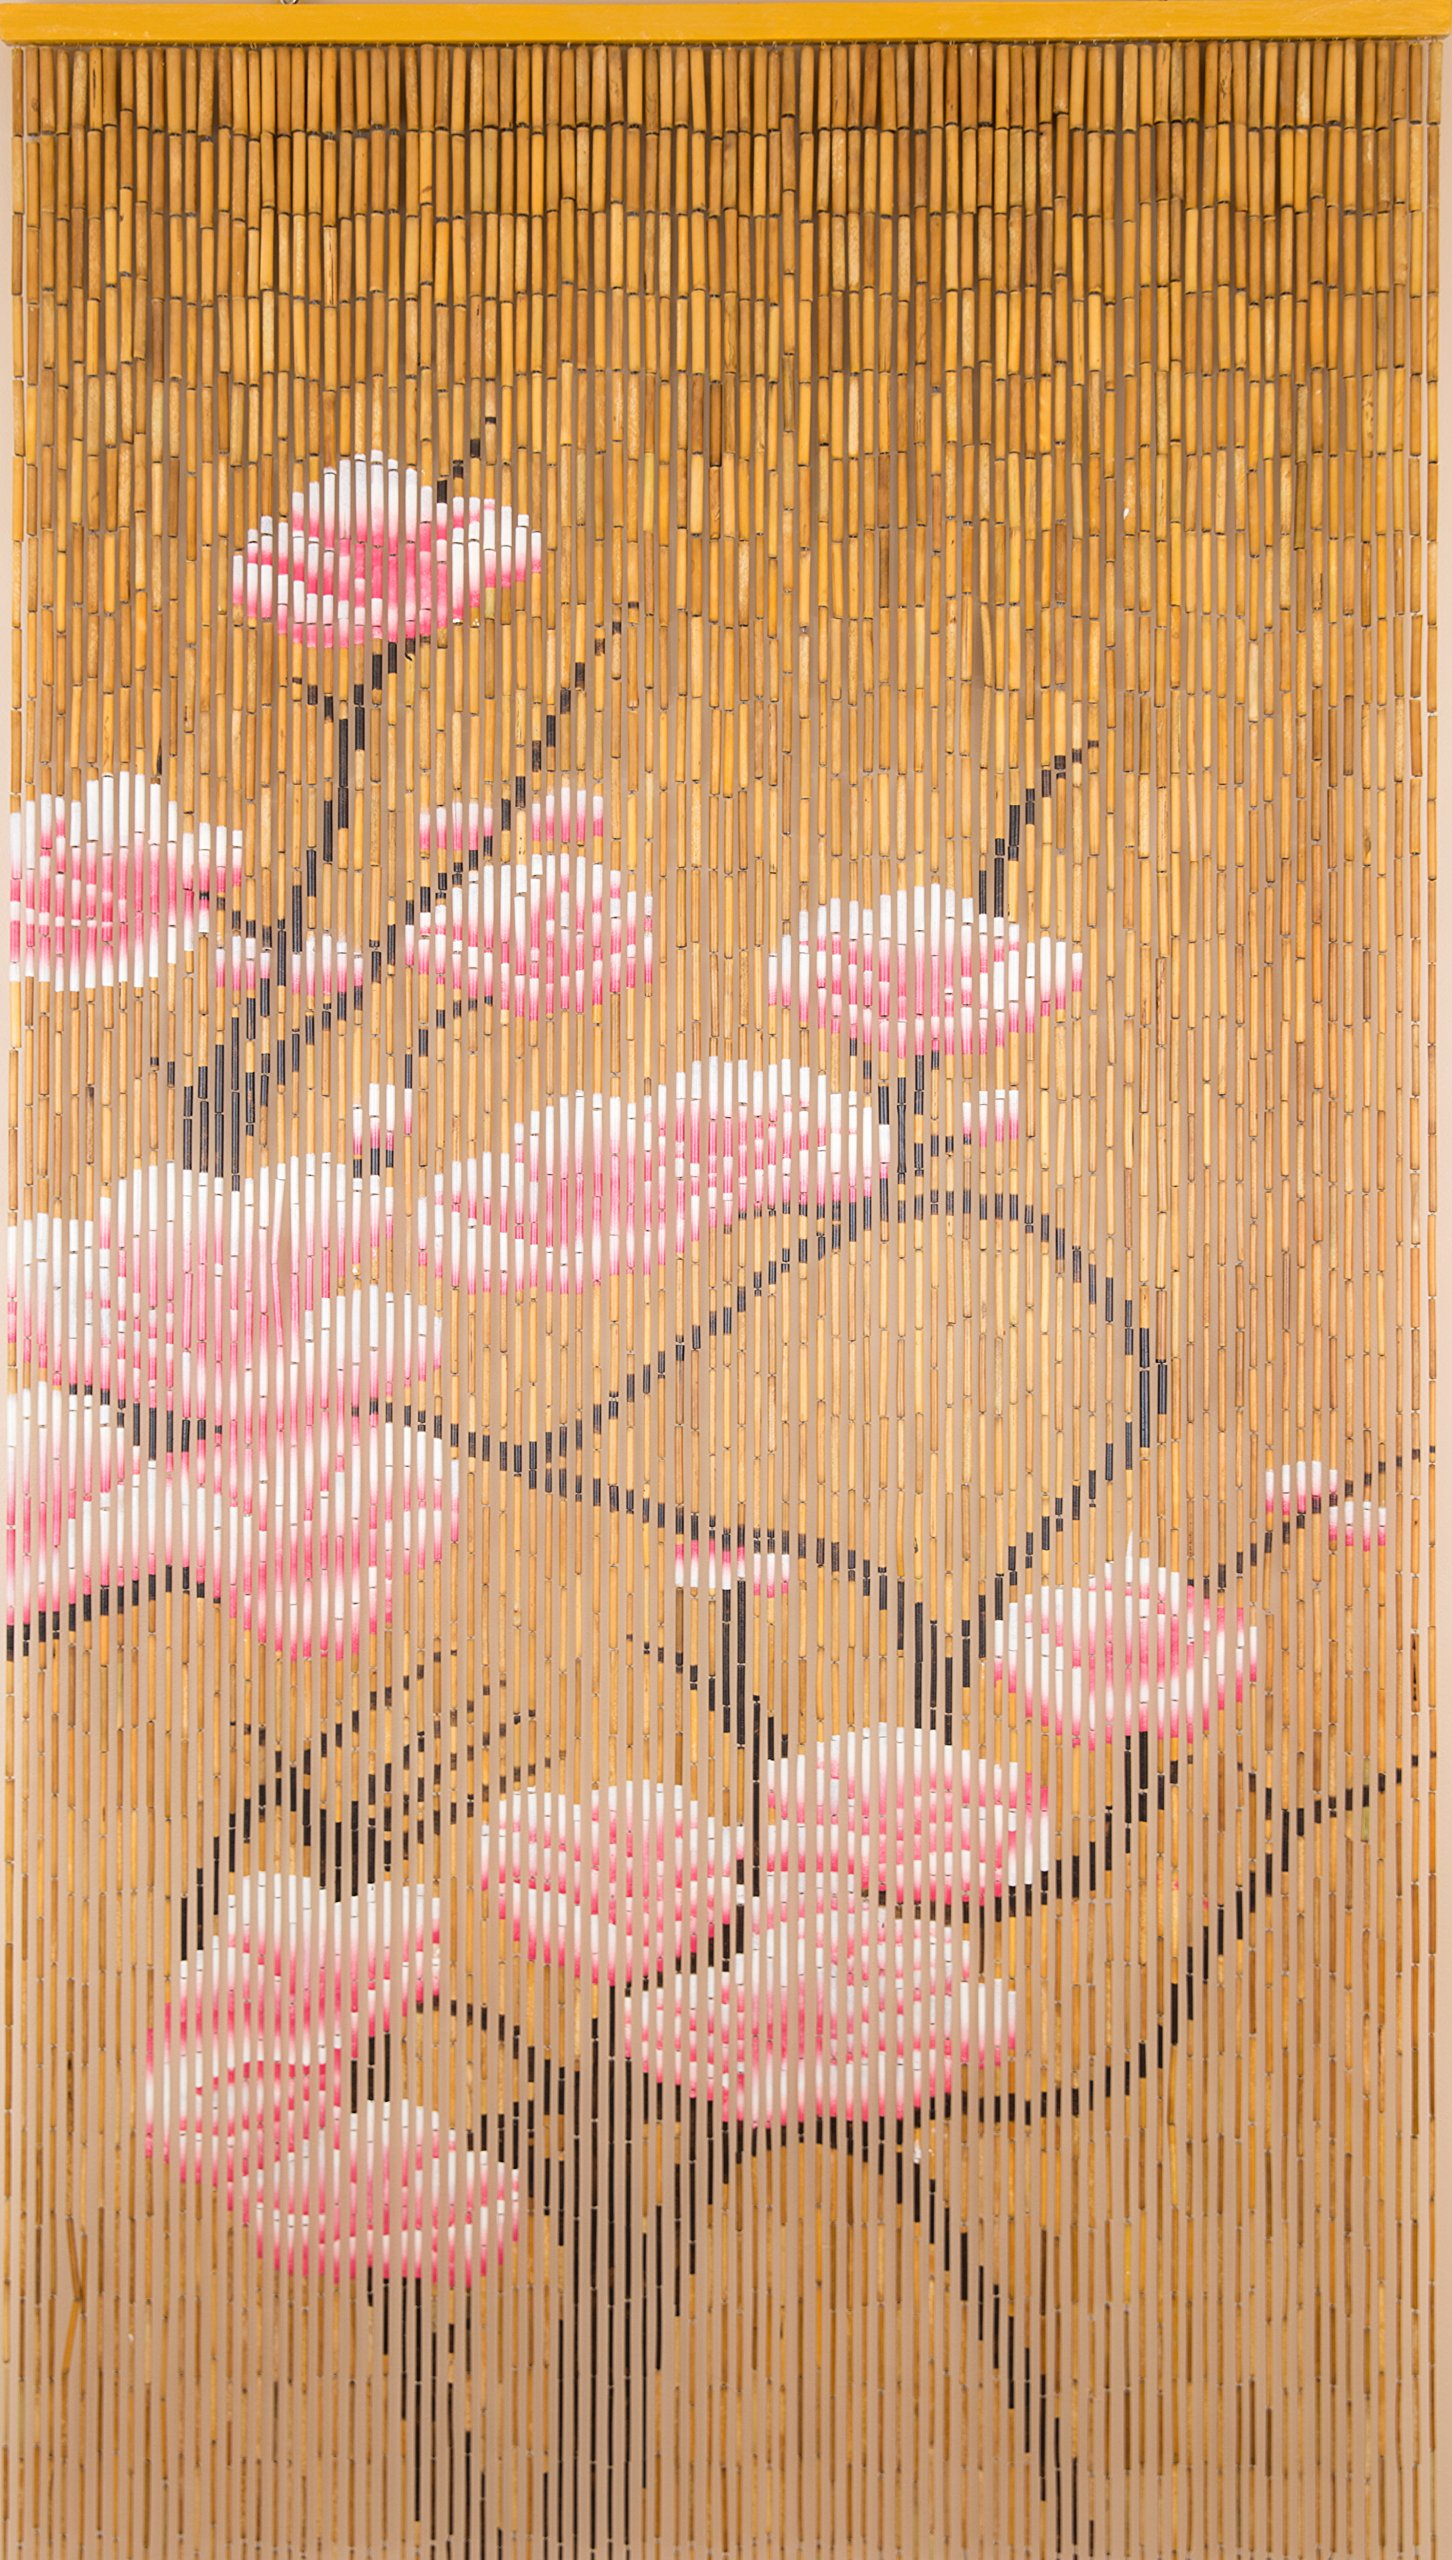 BeadedString Natural Bamboo Wood Beaded Curtain-90 Starnds-80 High-Boho Door Beads-Bohemian Doorway Curtain-35.5'' Wx80 H-Blossom by BeadedString (Image #1)